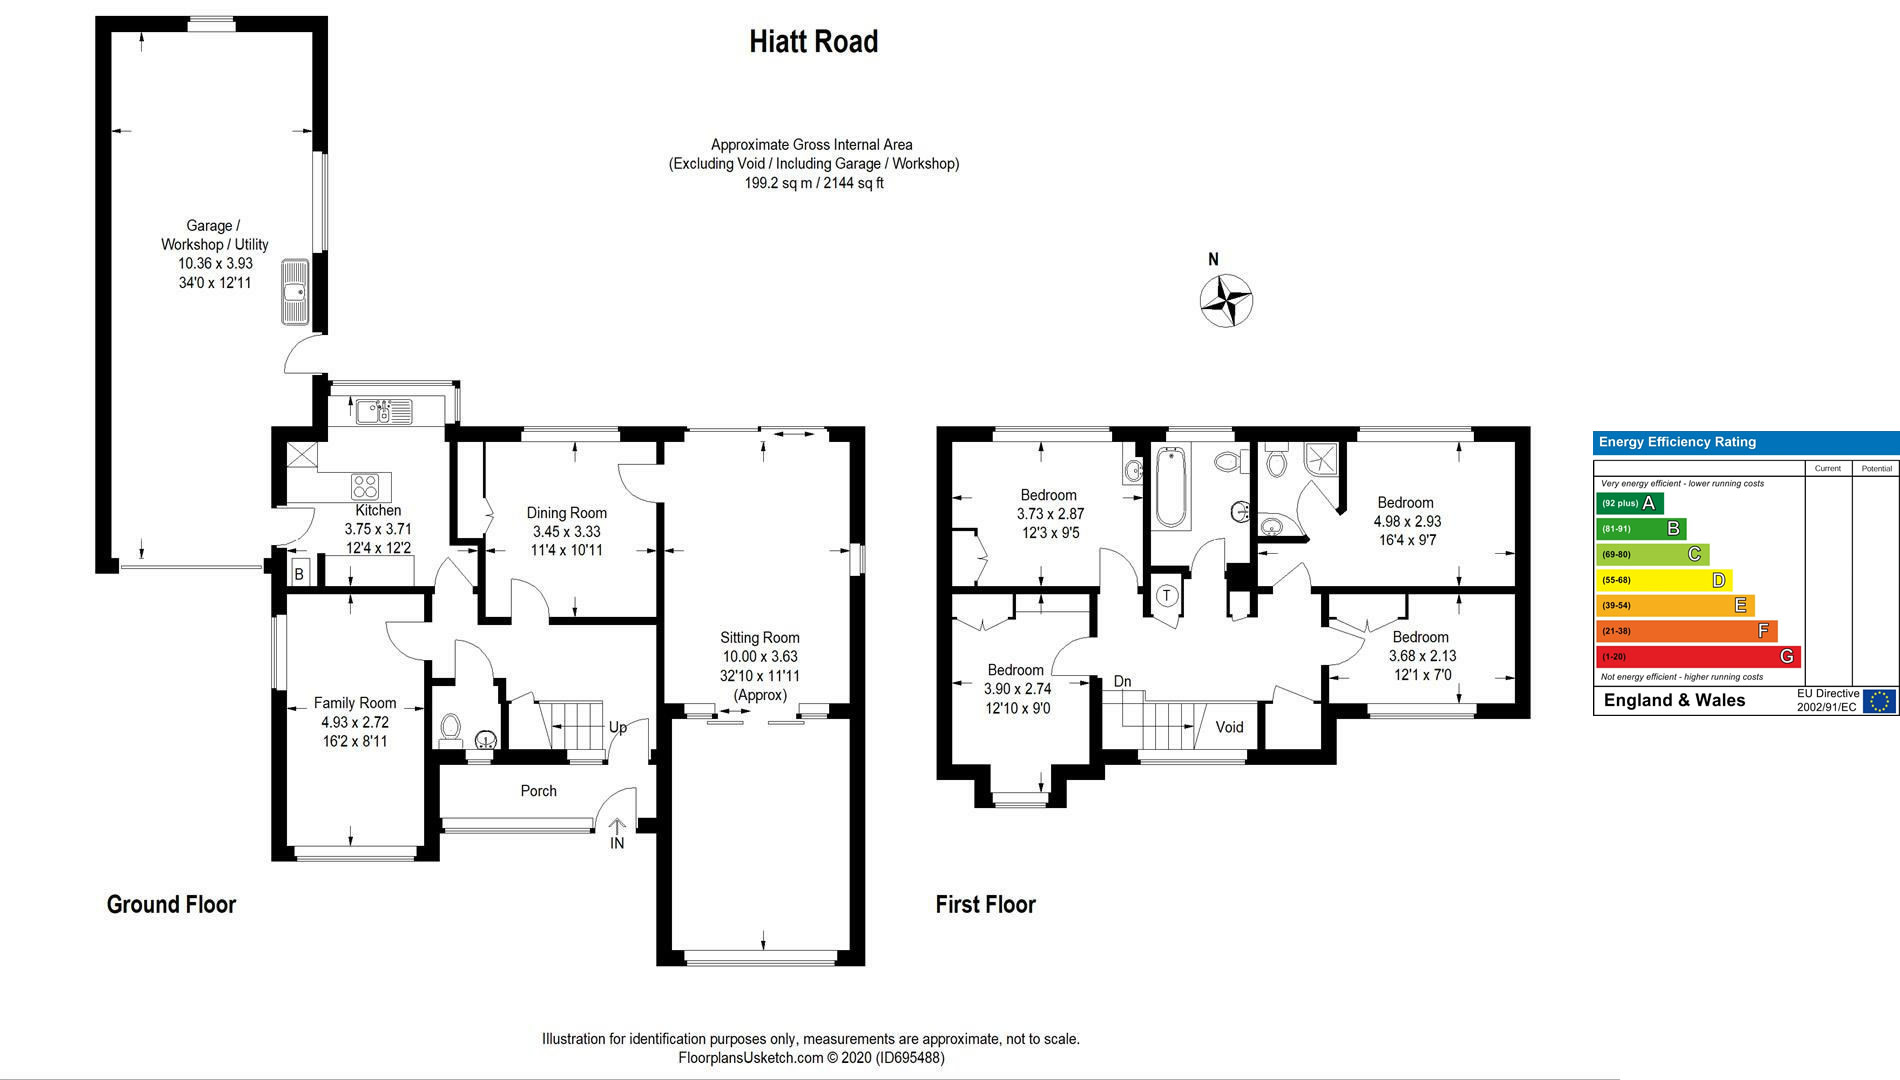 Brochure 7 Hiatt Road